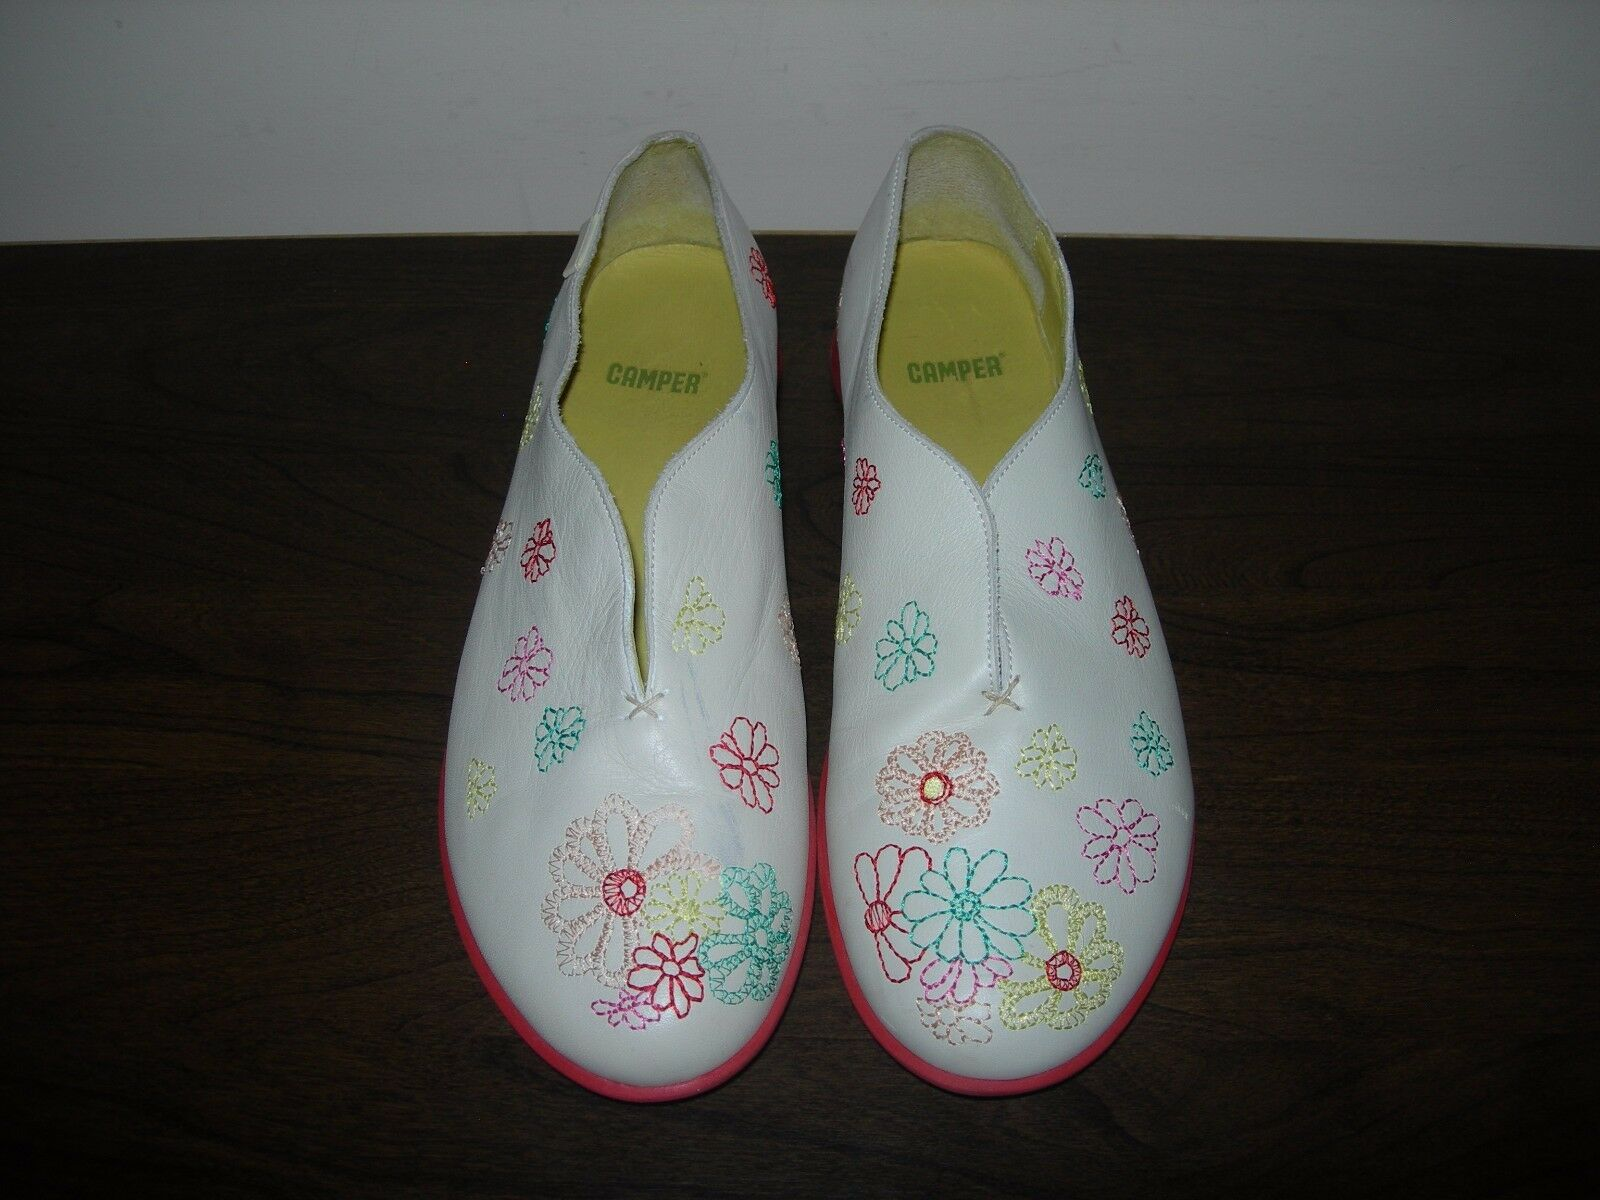 CAMPER WOMEN'S Schuhe SLIP ON PUMPS FLAT IVORY LEATHER FLORAL EU 41- 40 / UK 8- 7